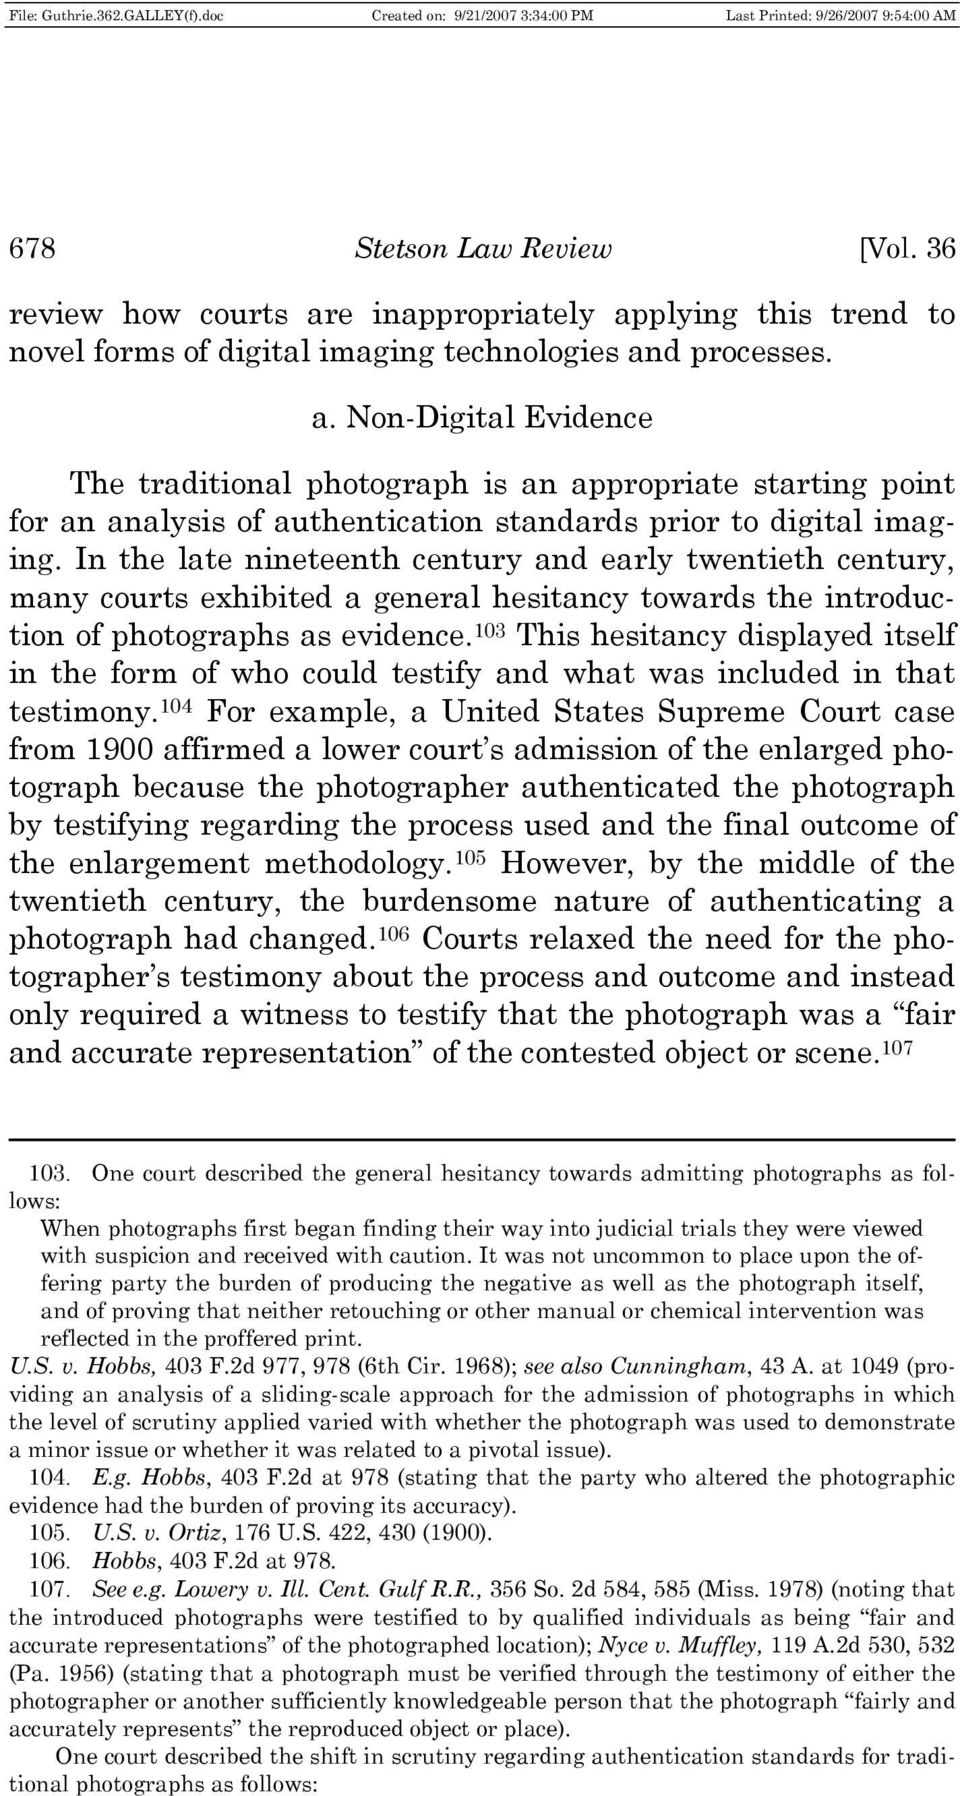 In the late nineteenth century and early twentieth century, many courts exhibited a general hesitancy towards the introduction of photographs as evidence.